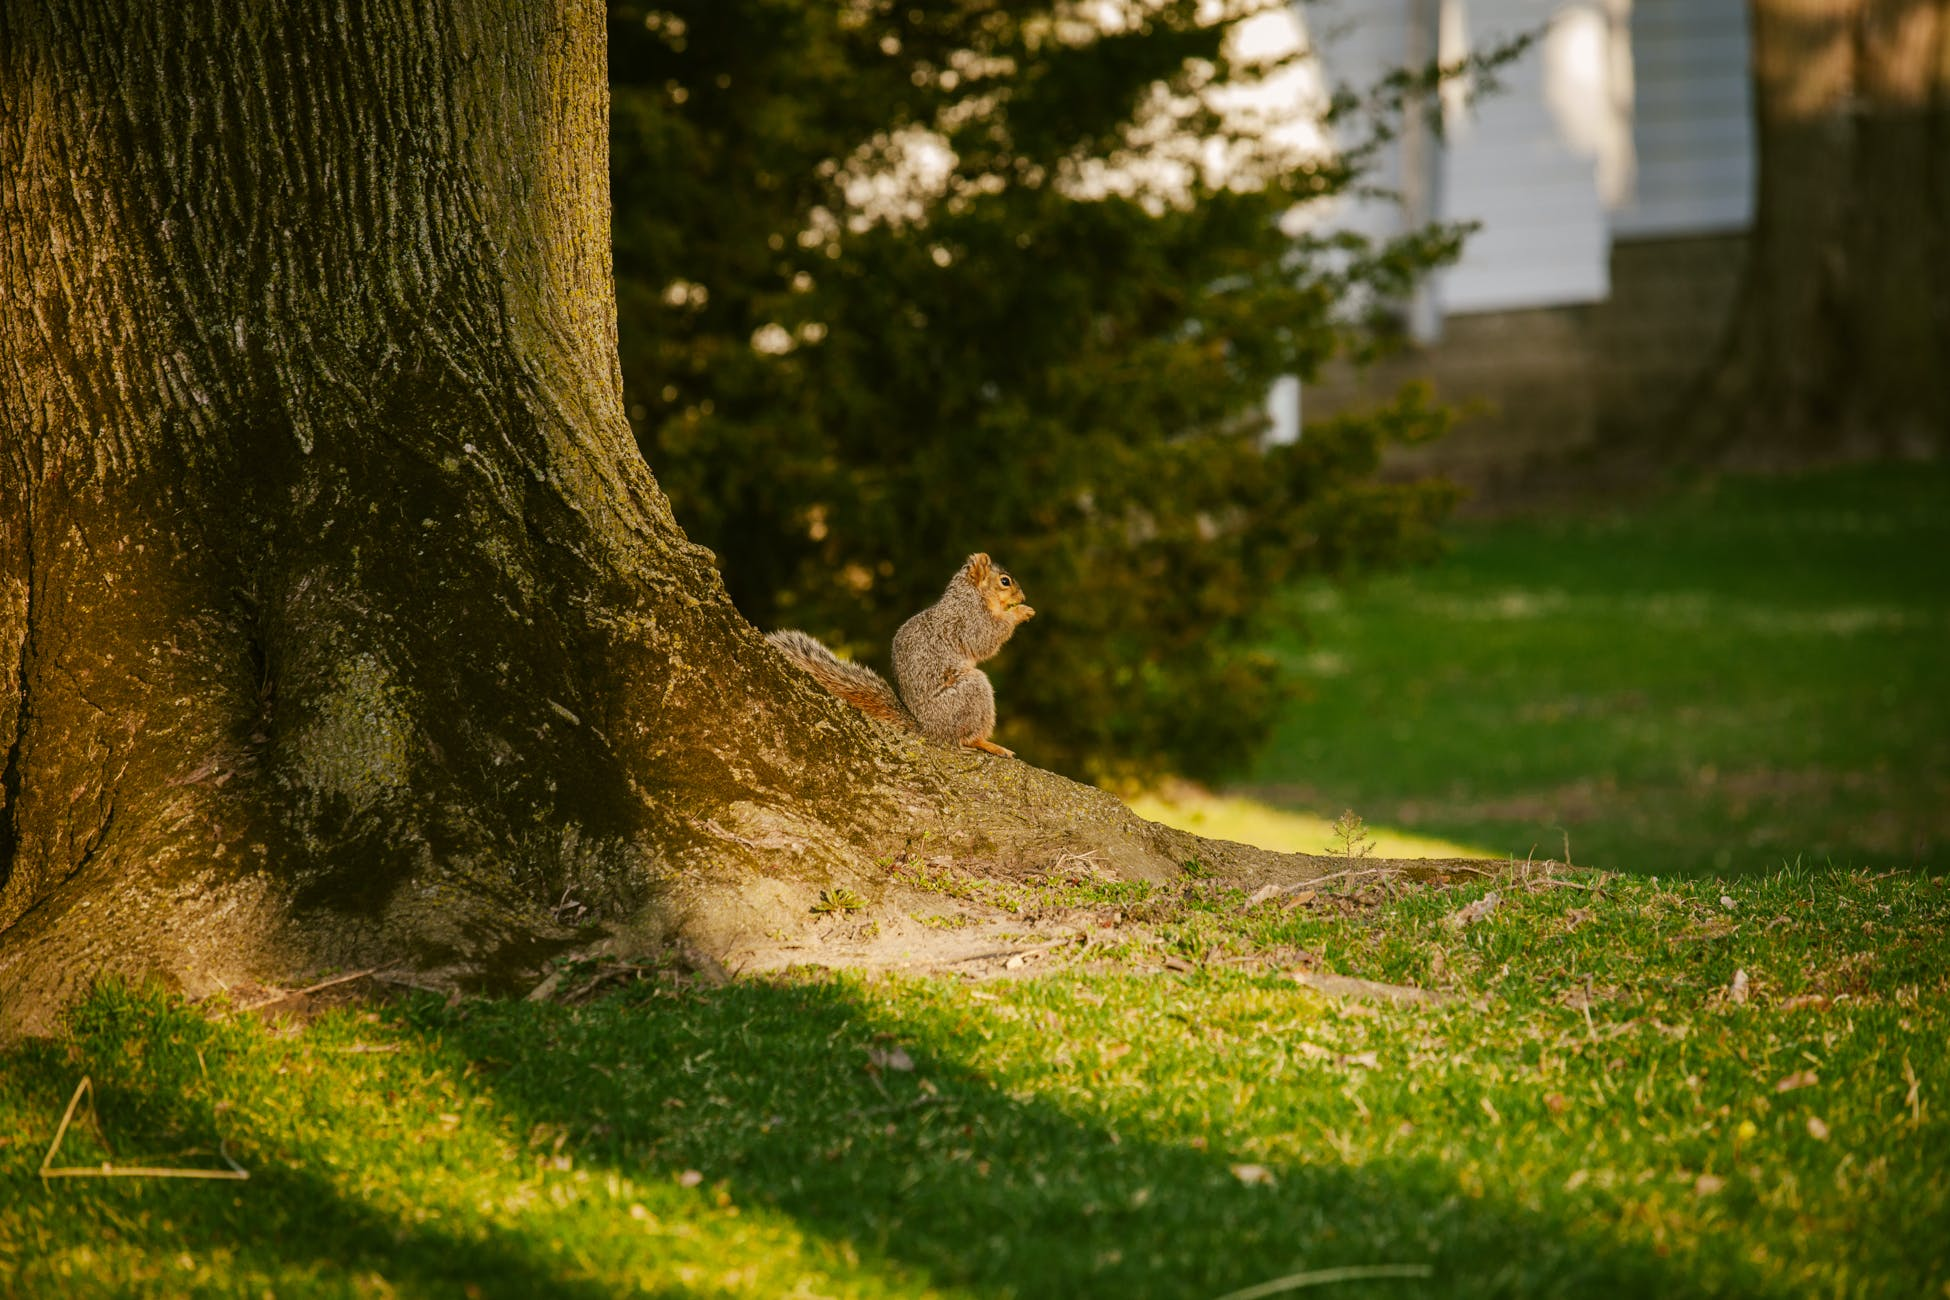 Free stock photo of nature, outdoors, squirrel